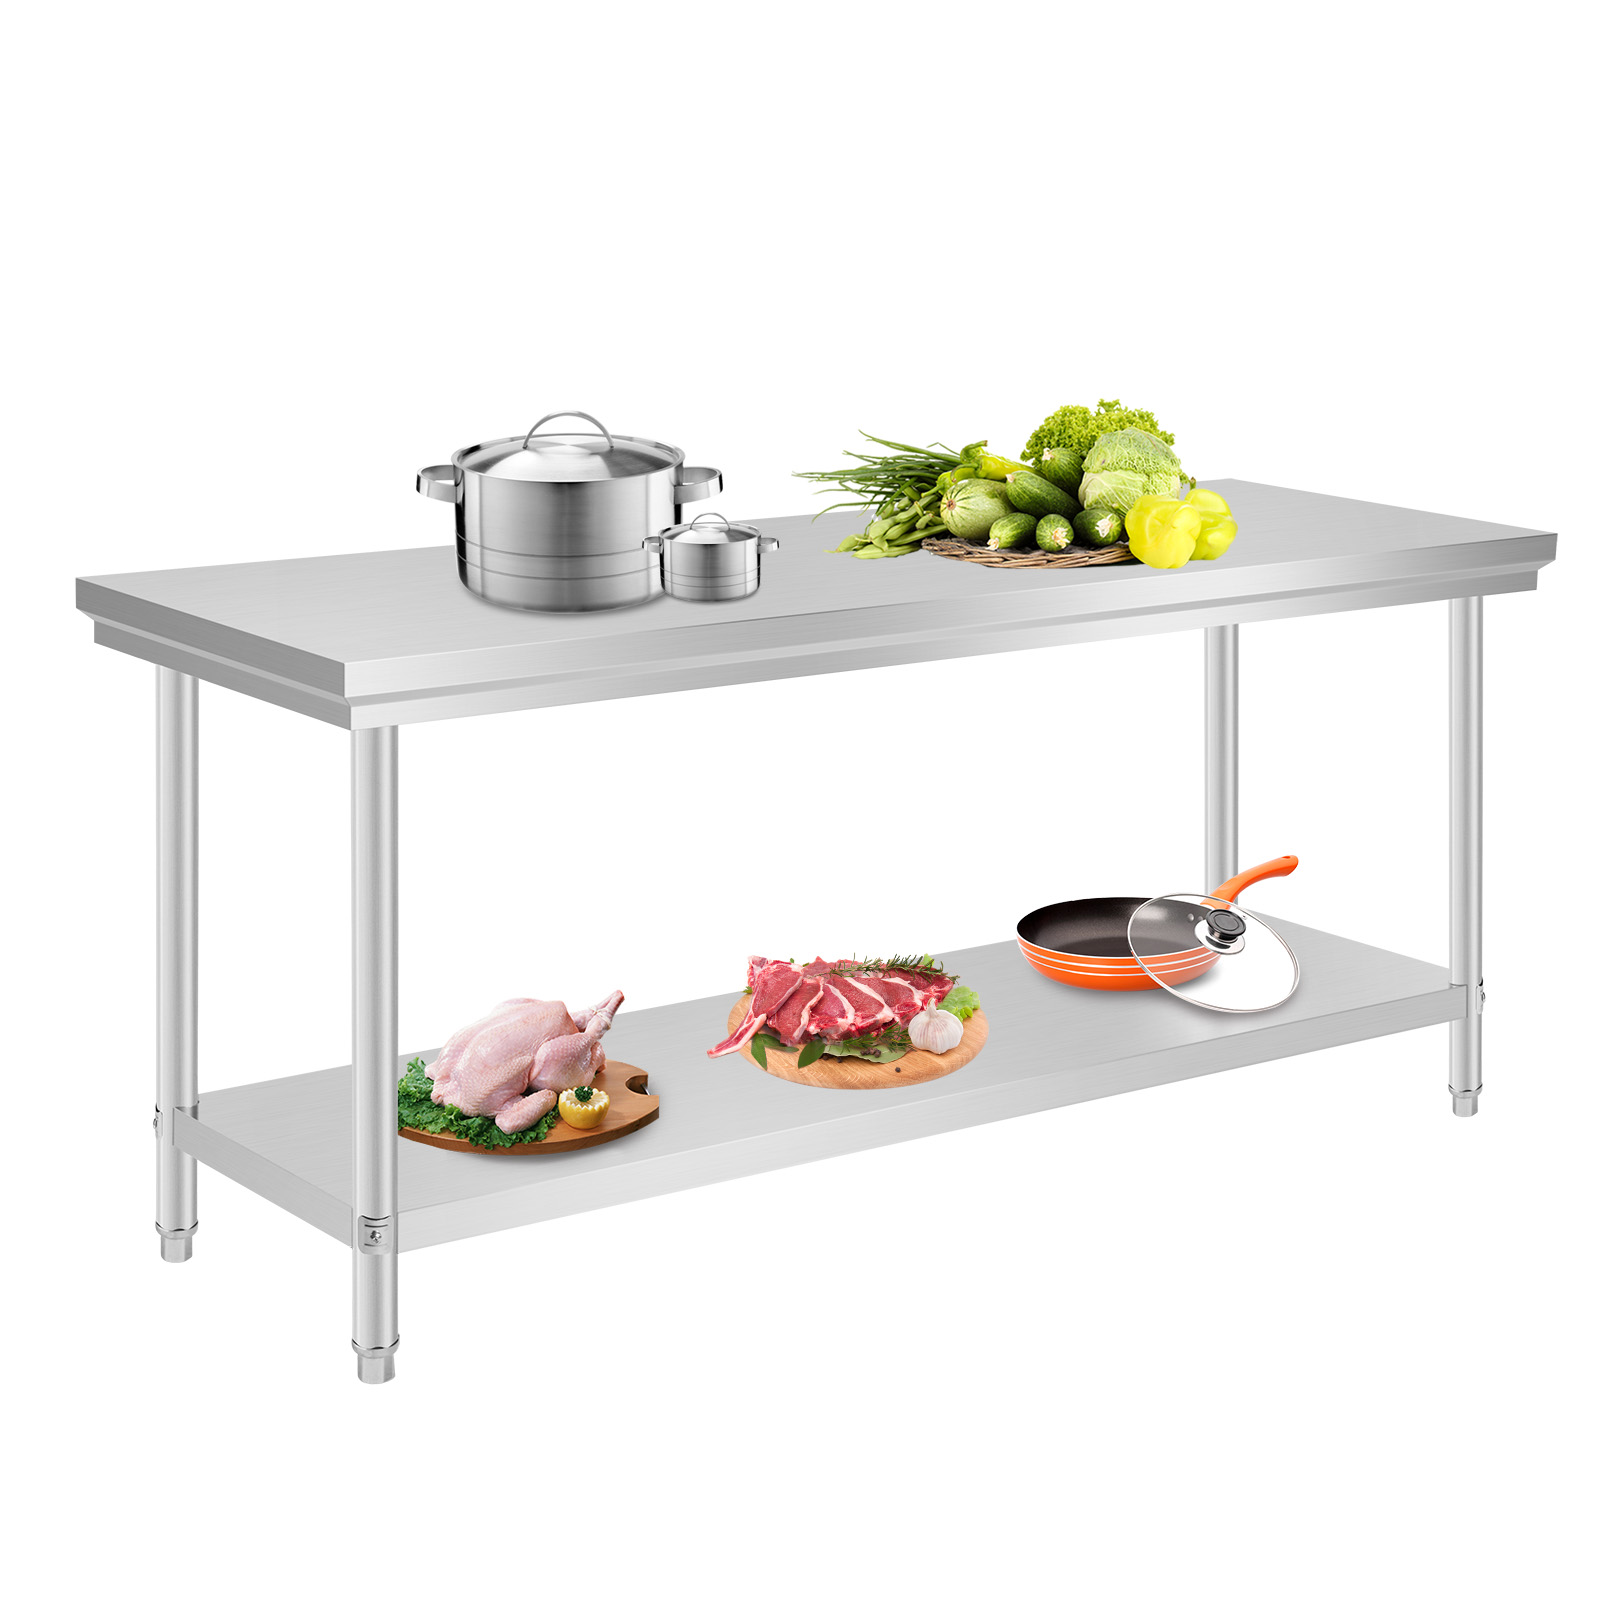 201 mercial Stainless Steel Kitchen Work Bench Top Food